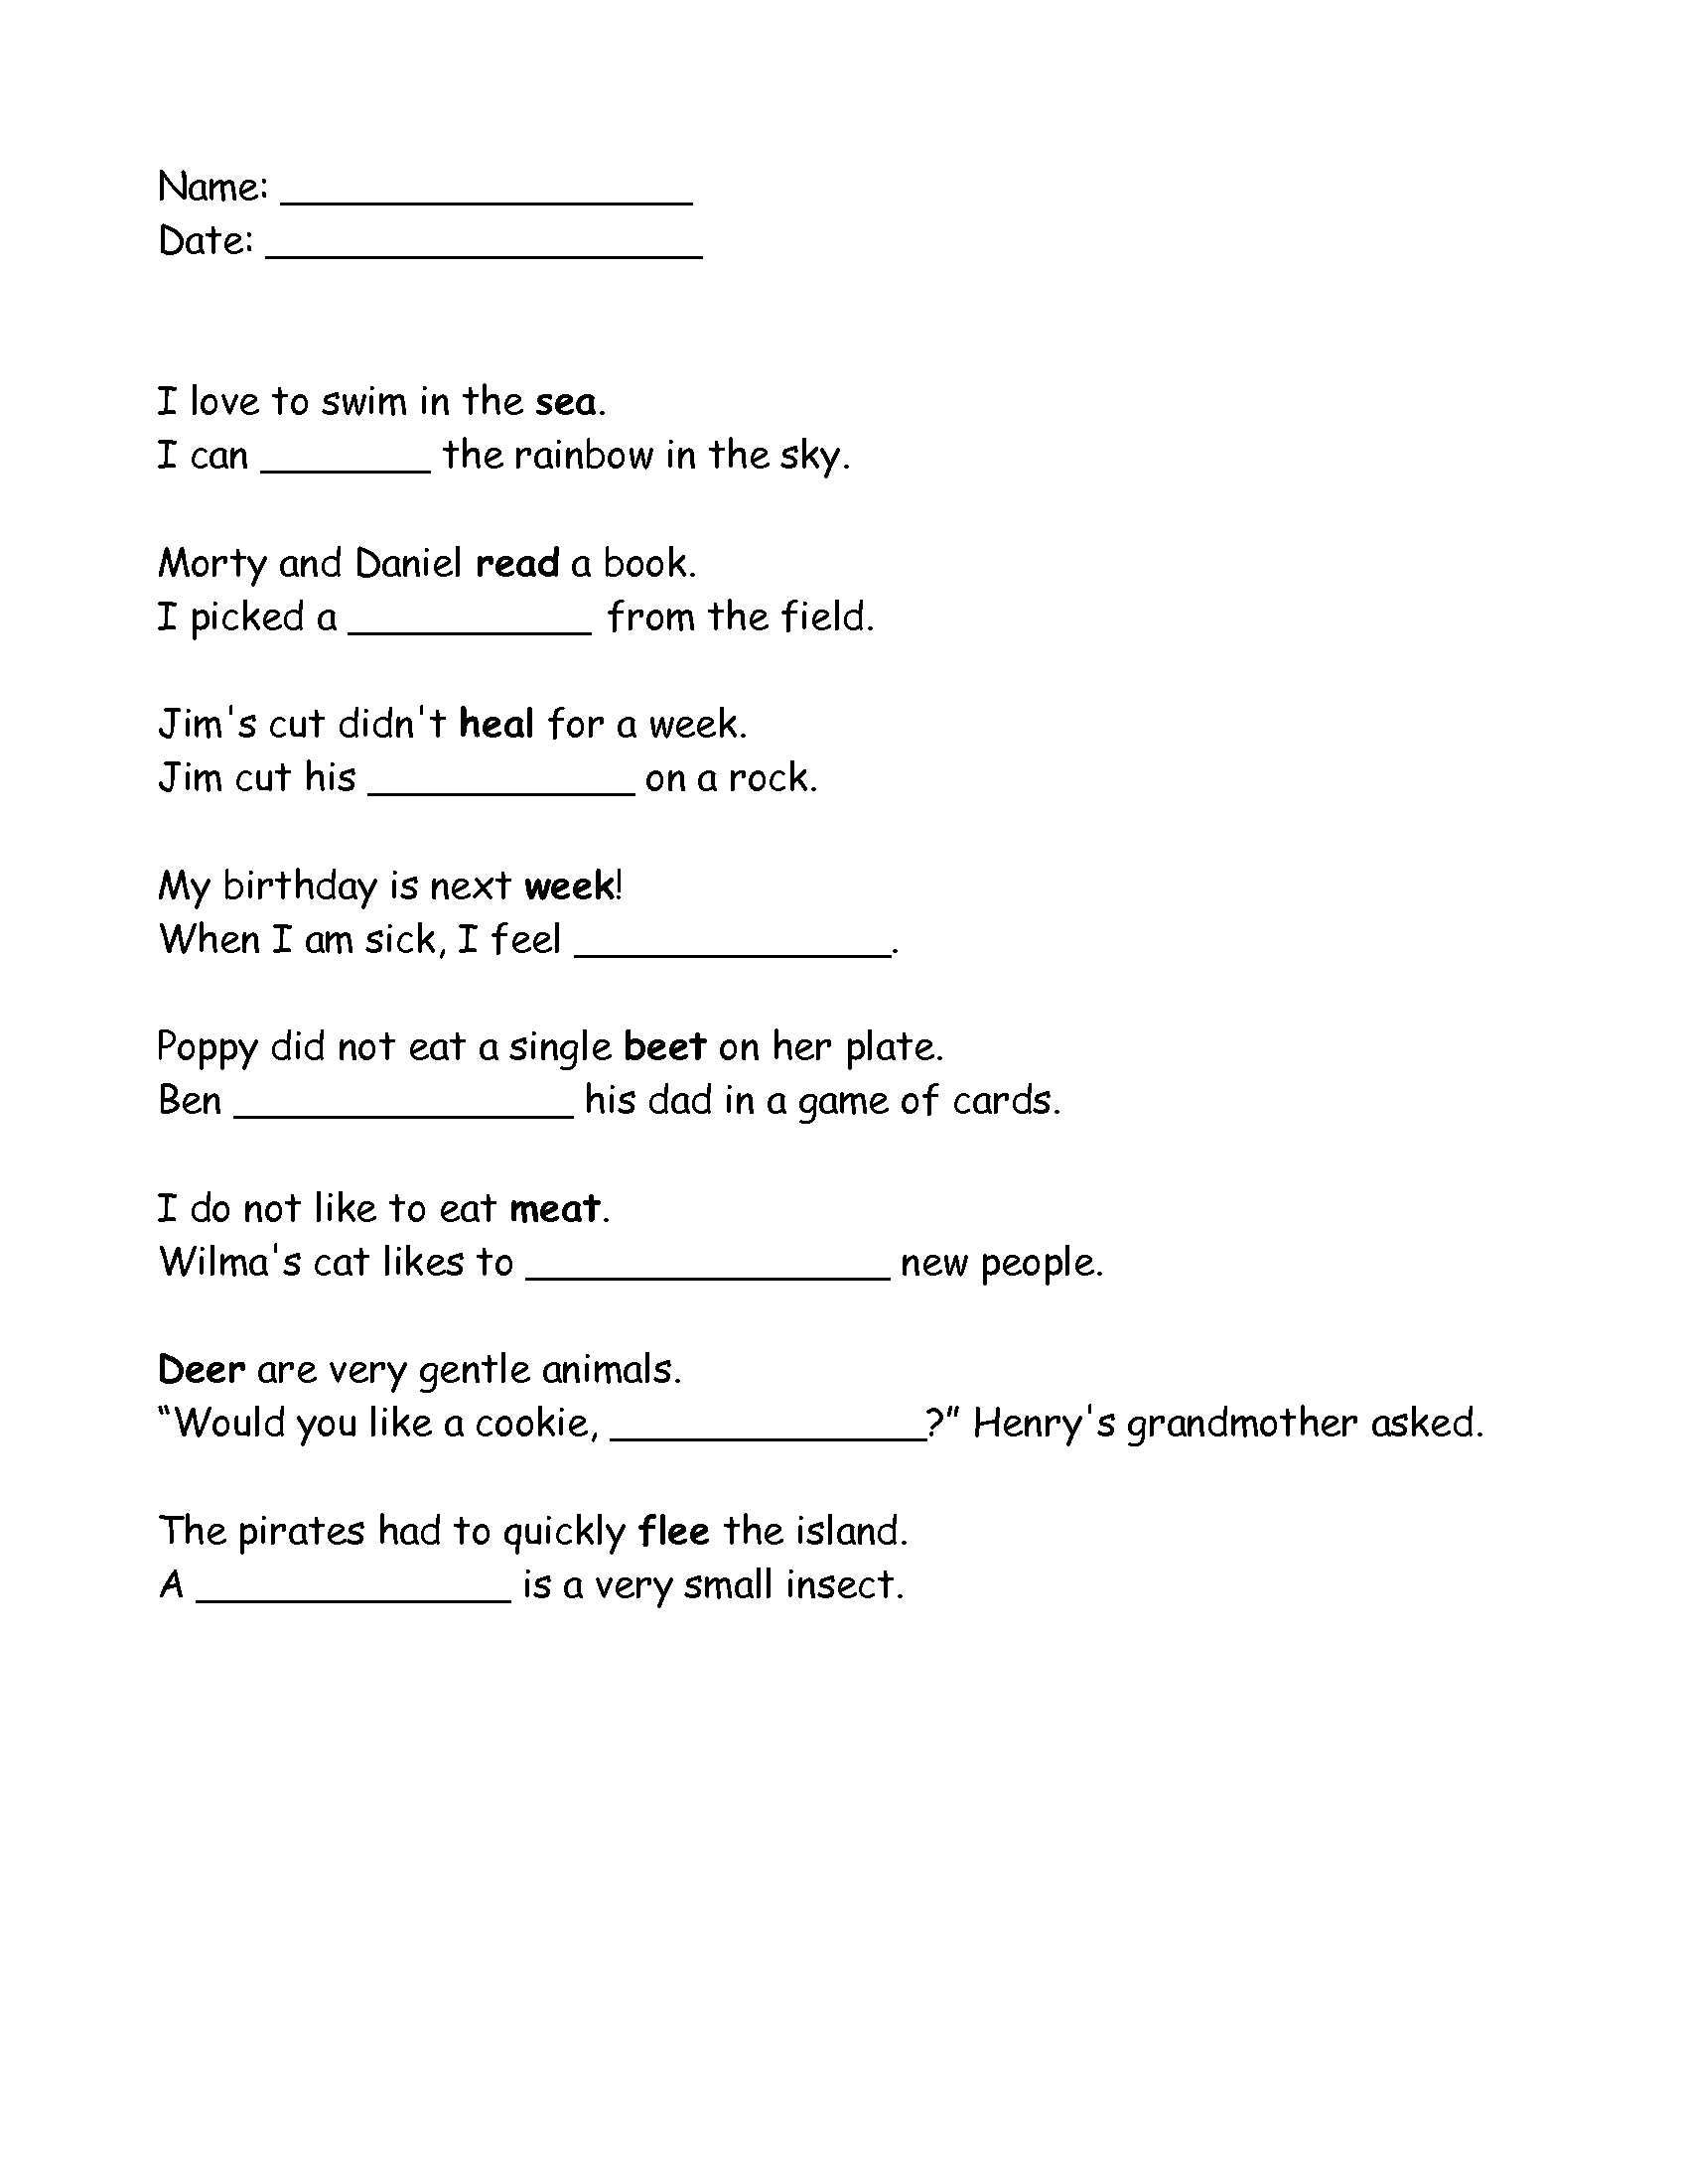 Homophone Worksheet 4th Grade Grade 2 Homophones Ee and Ea Worksheet that I Made Click